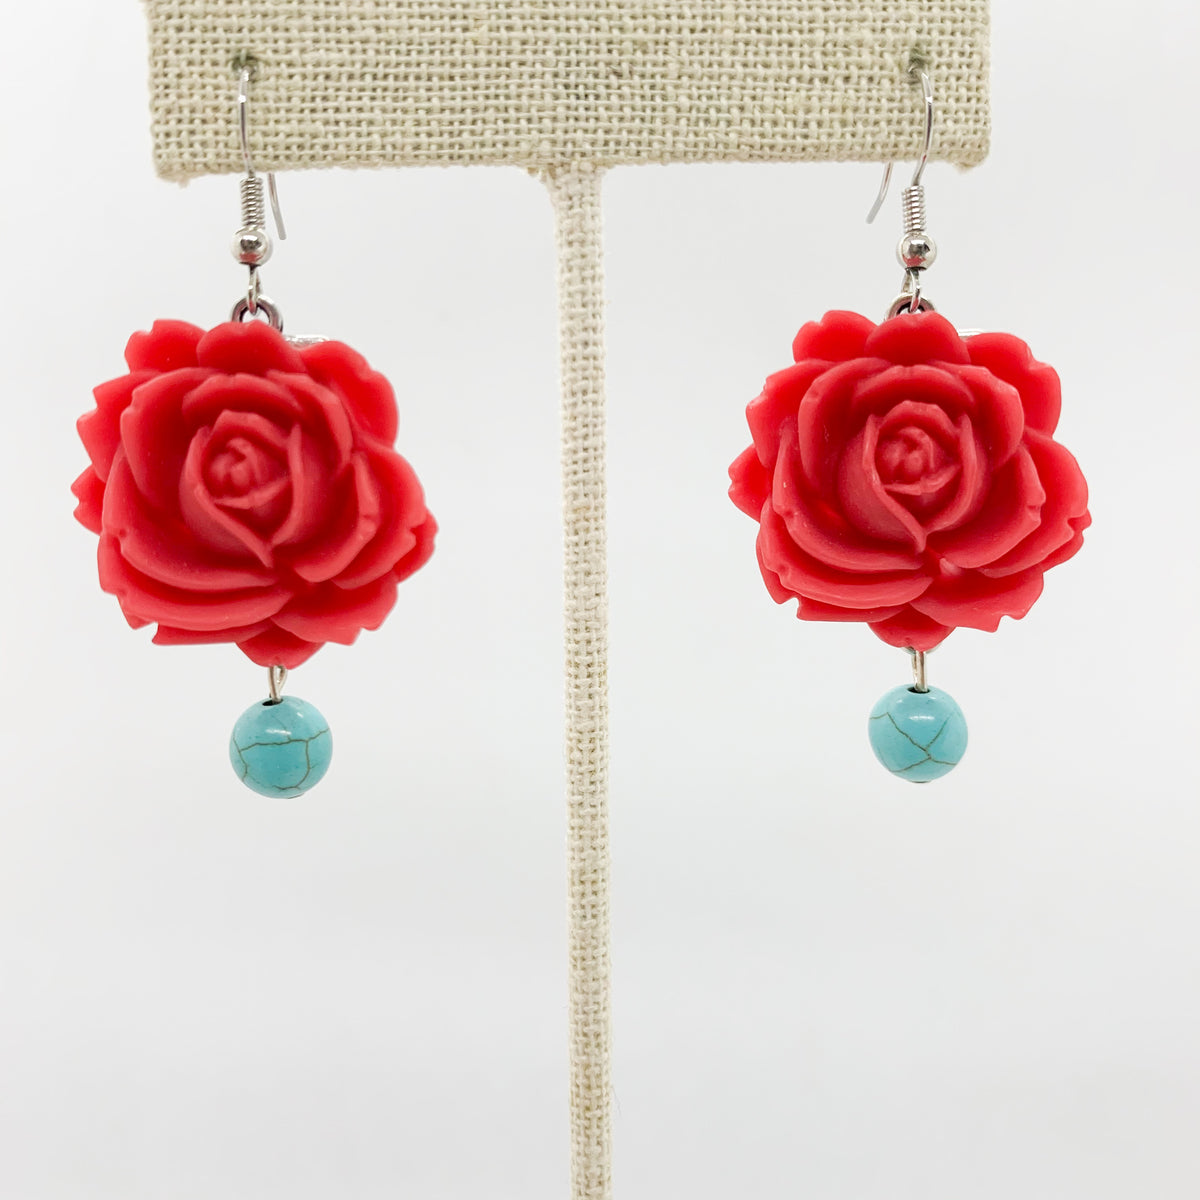 La Chica in Turquoise and Red – Butterflies and Hummingbirds